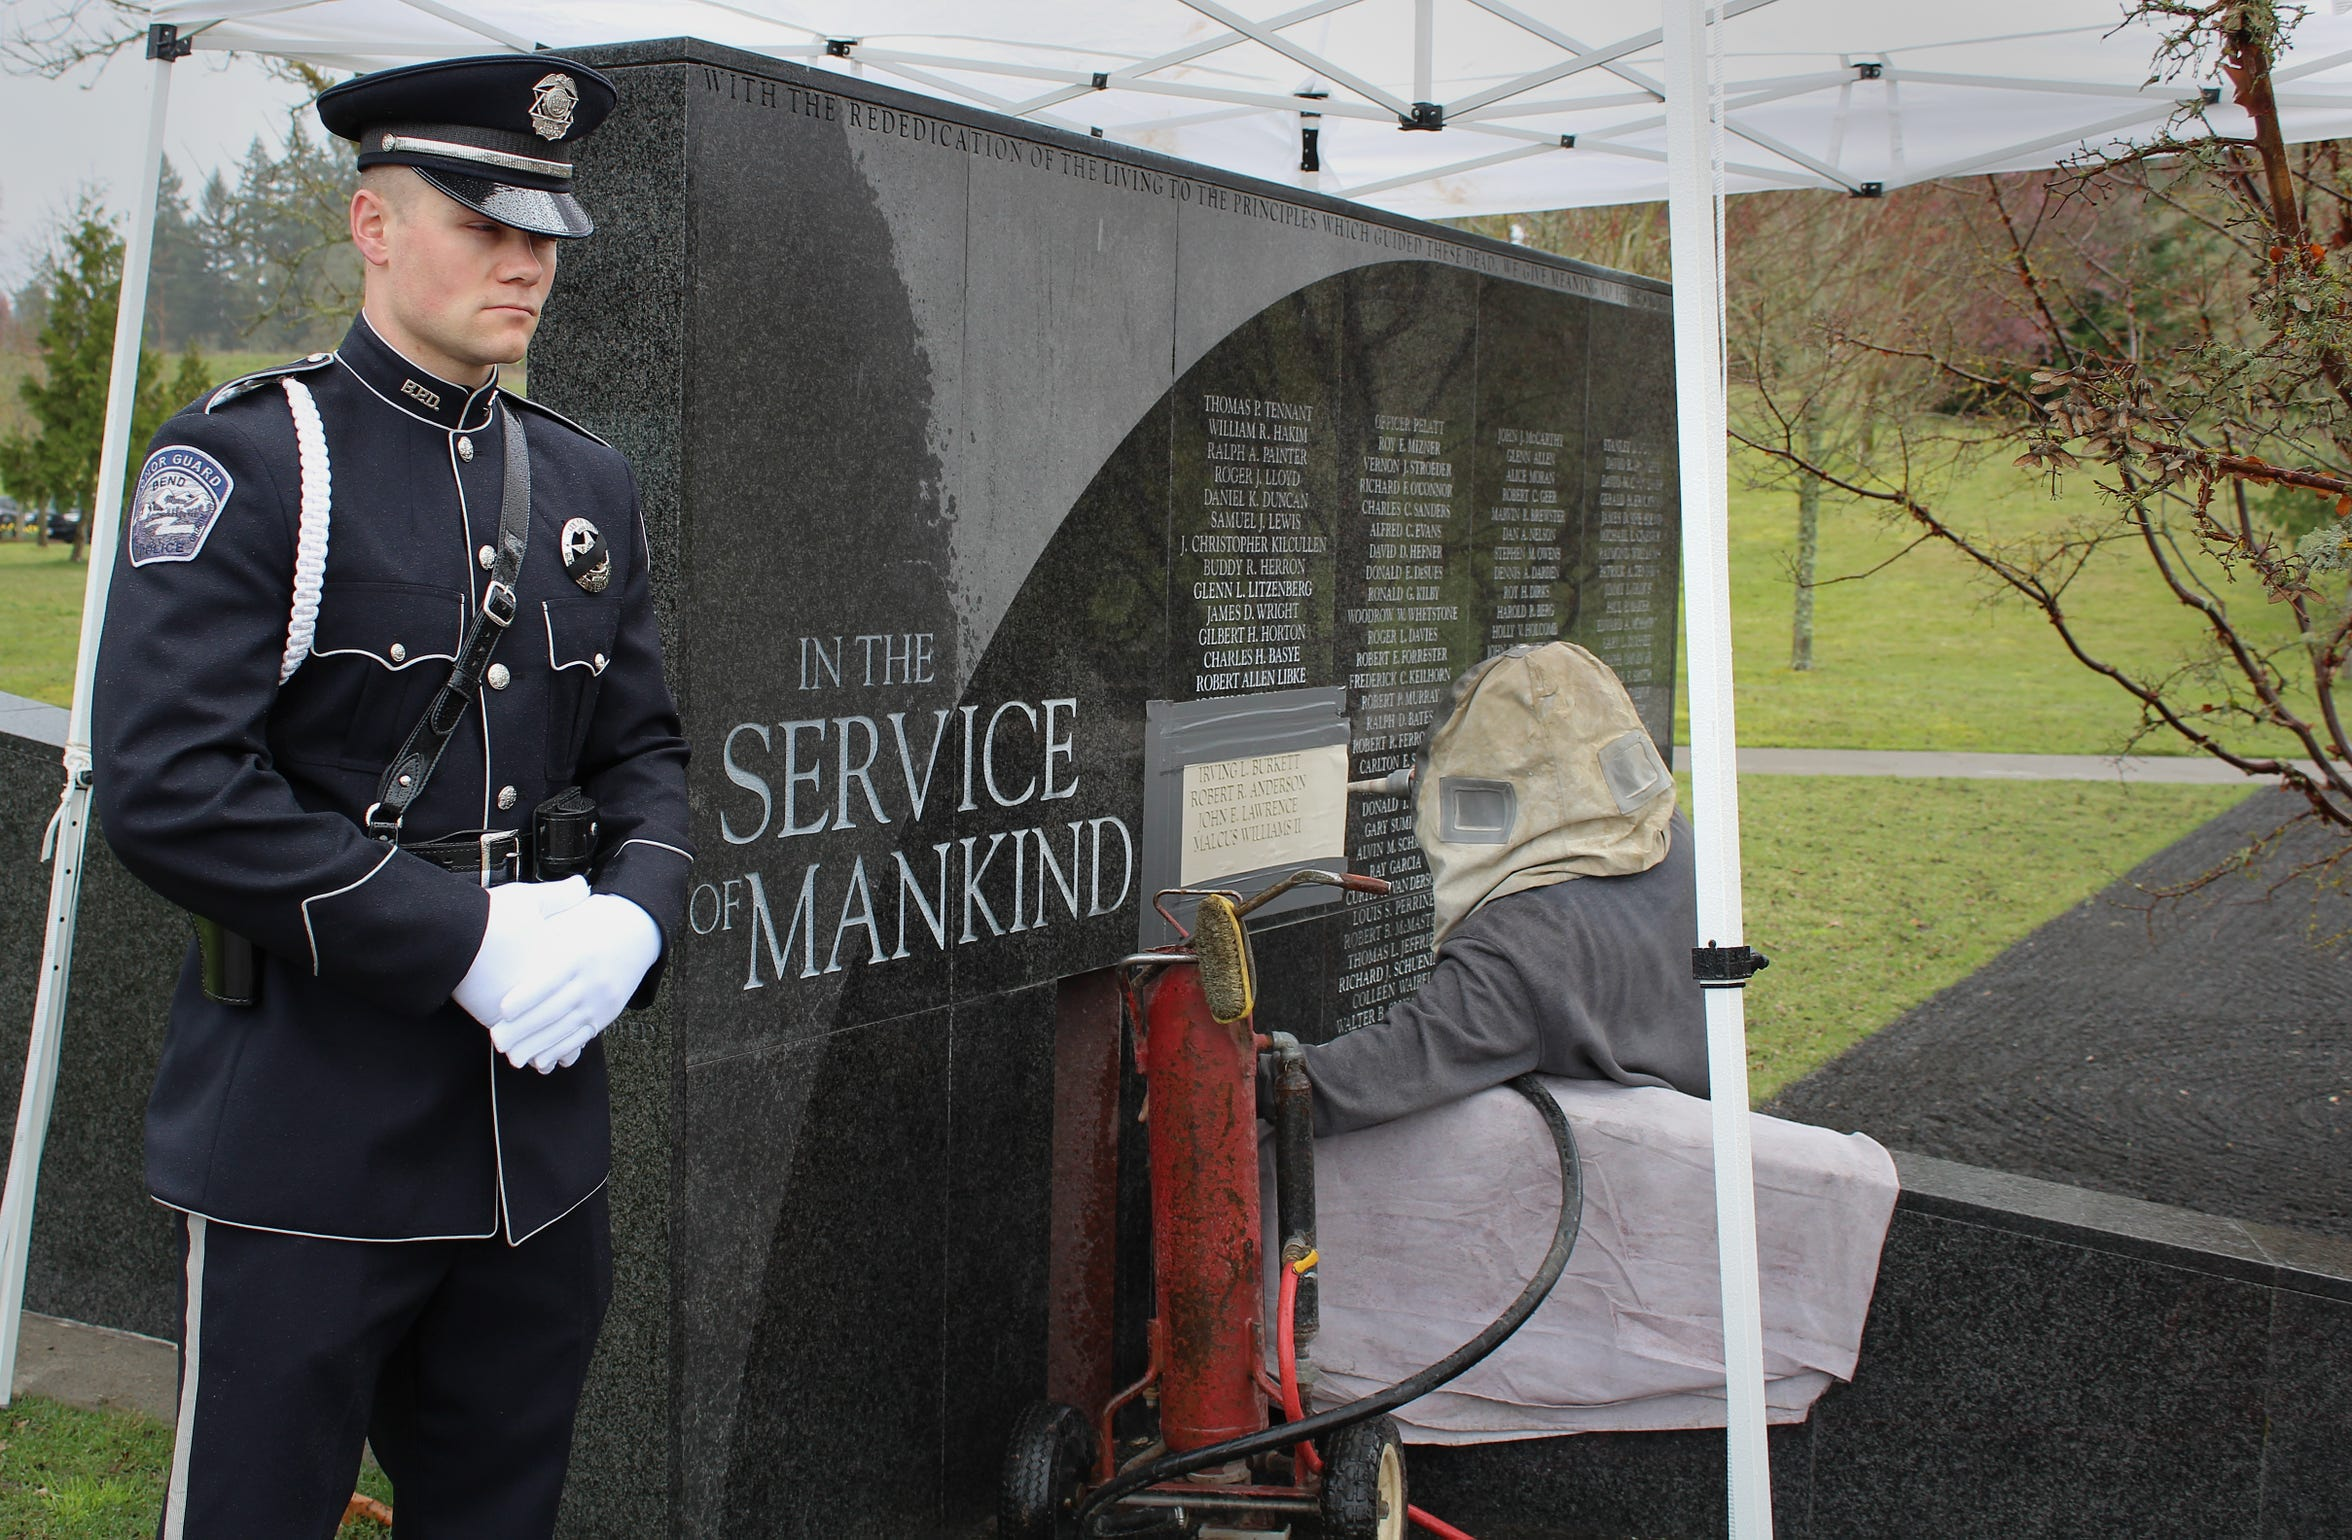 The City of Bend Police Department Honor Guard stands watch as the names of four officers are etched into the State's memorial at the Oregon Public Safety Academy in Salem April 3, 2019. The families of fallen officers and their names will be honored at the State's Fallen Officer Memorial ceremony later this year.